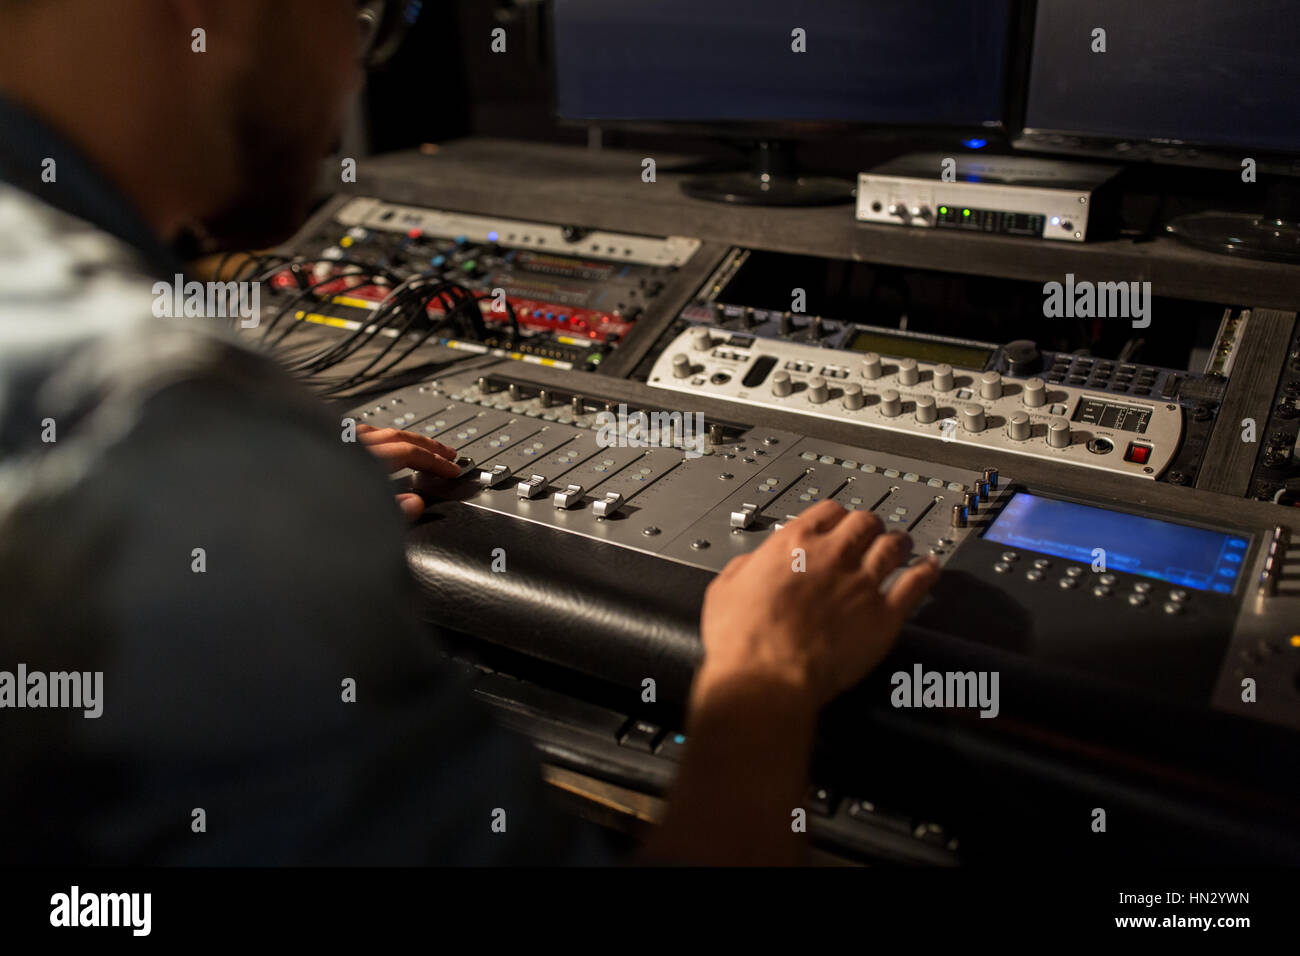 man using mixing console in music recording studio Stock Photo